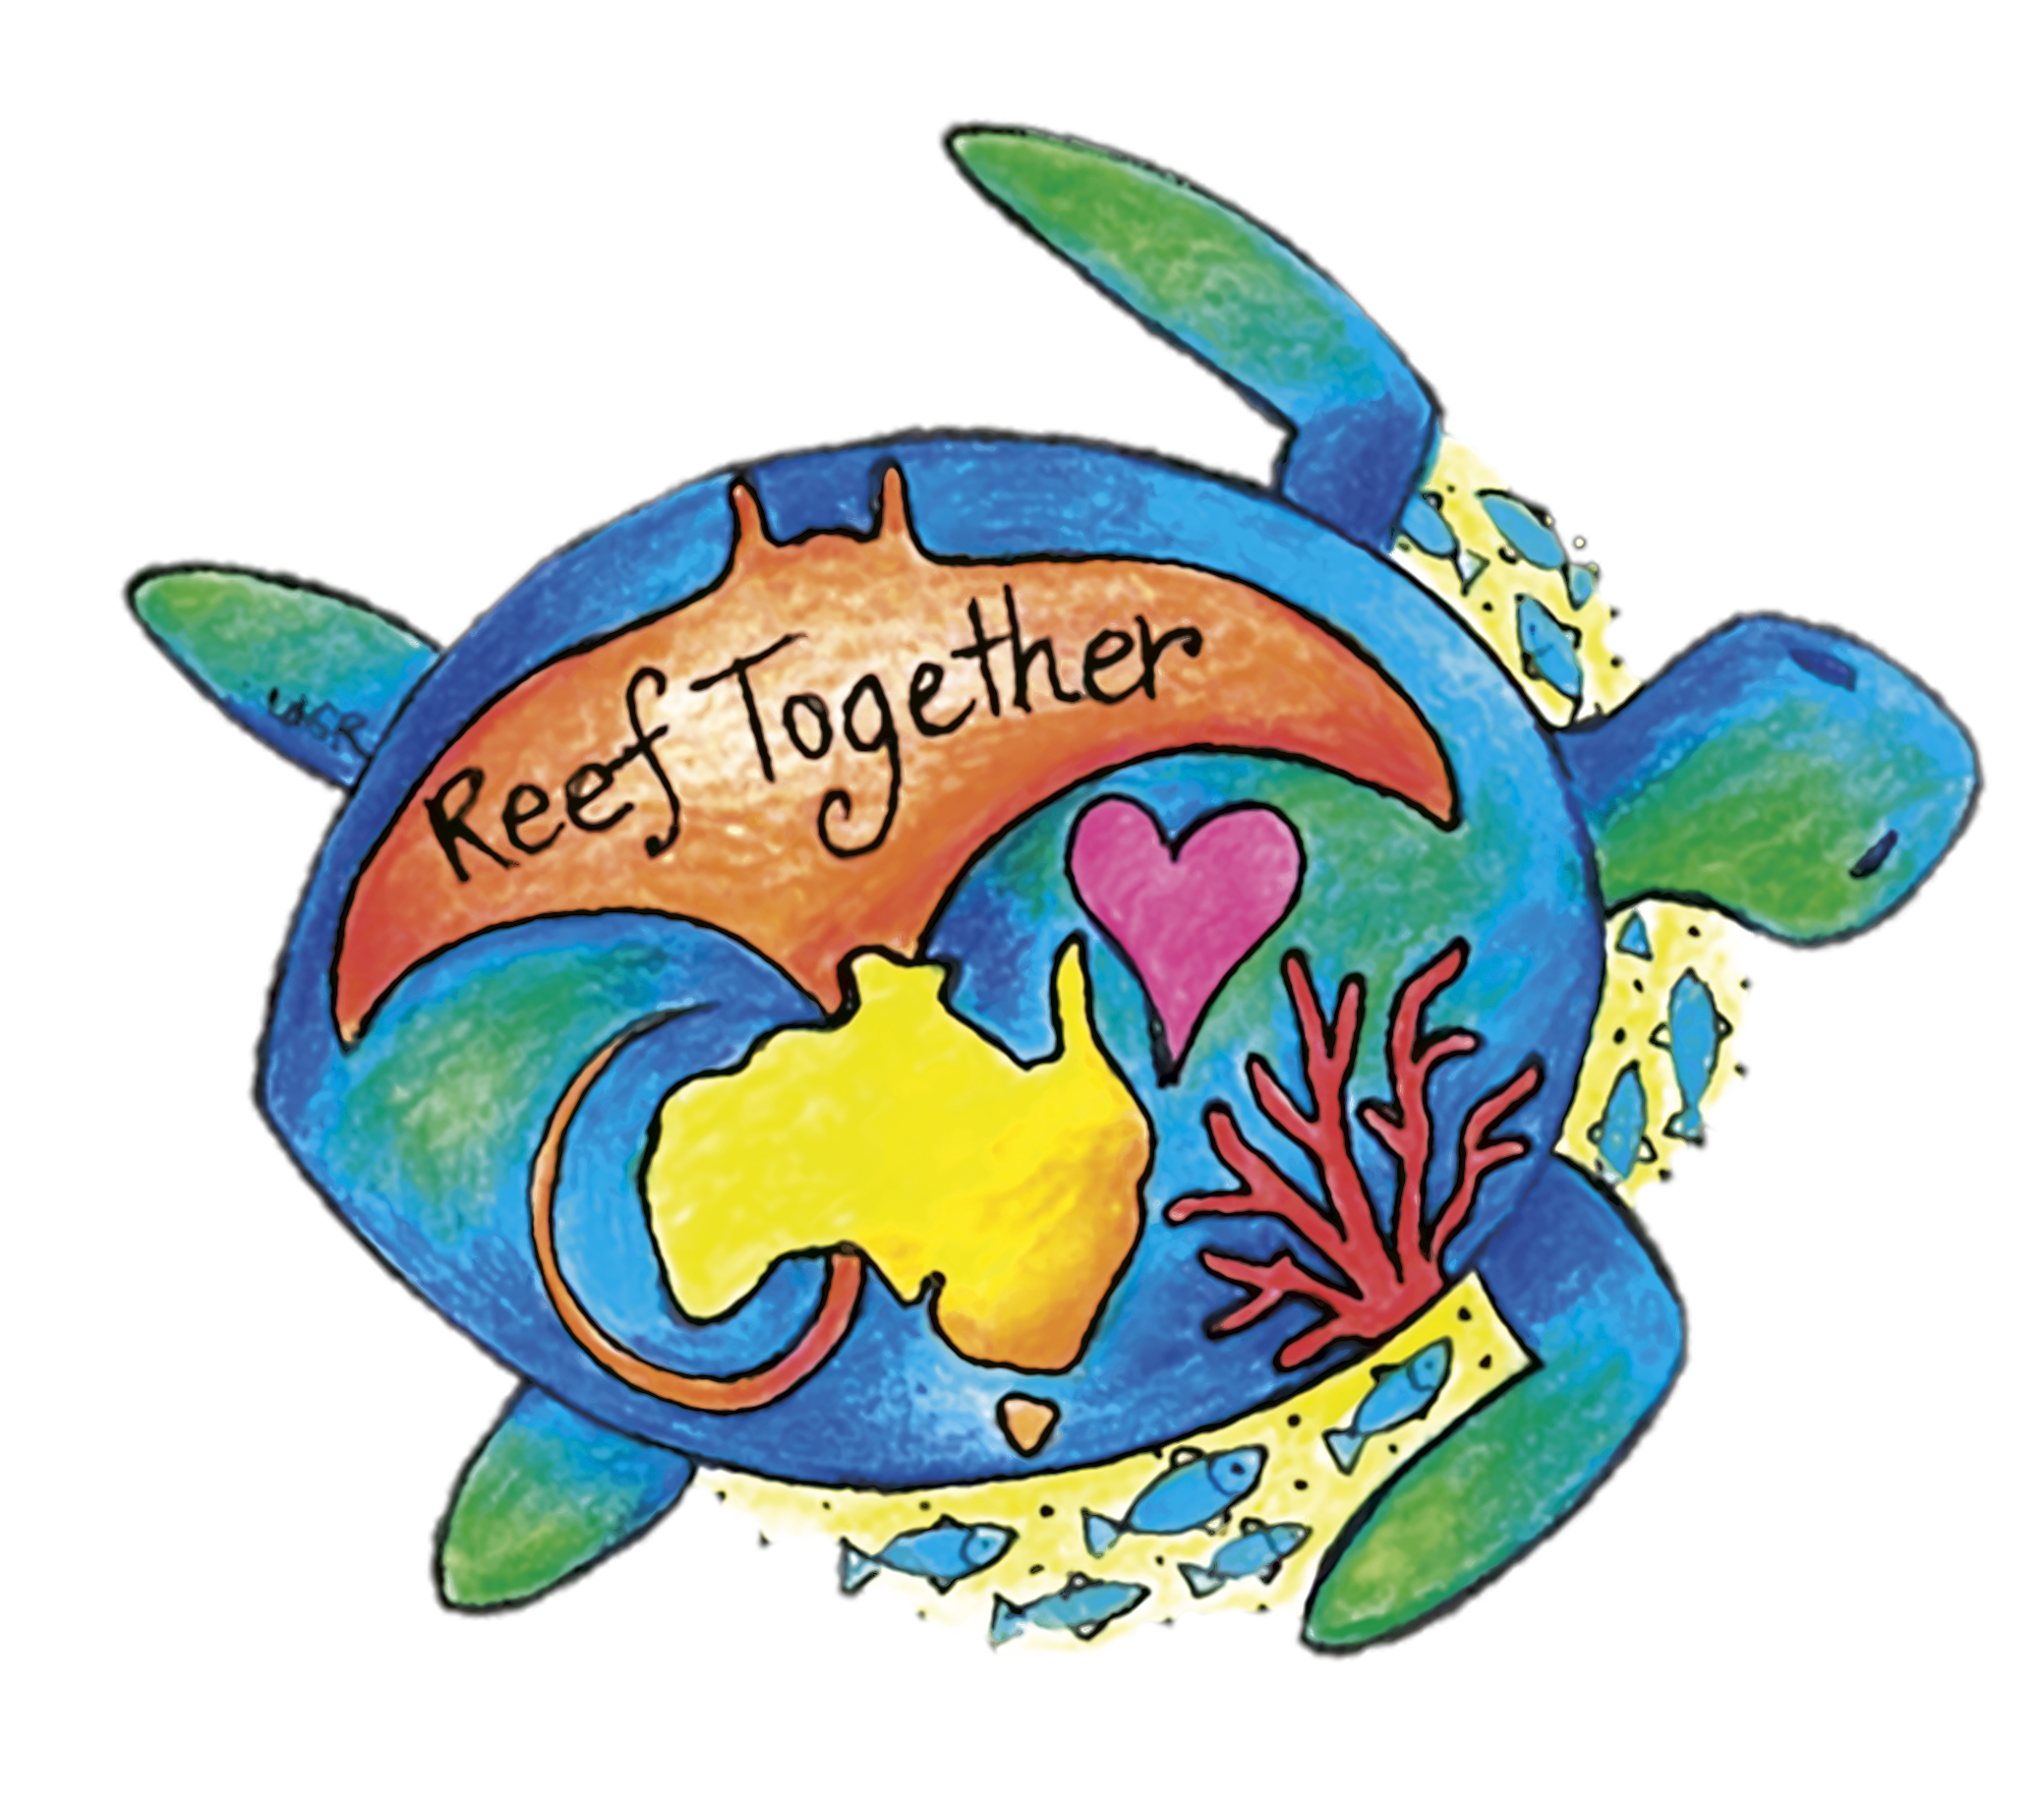 Great barrier reef clipart graphic black and white Reef Together - Great Barrier Reef Guardian Schools Convention ... graphic black and white